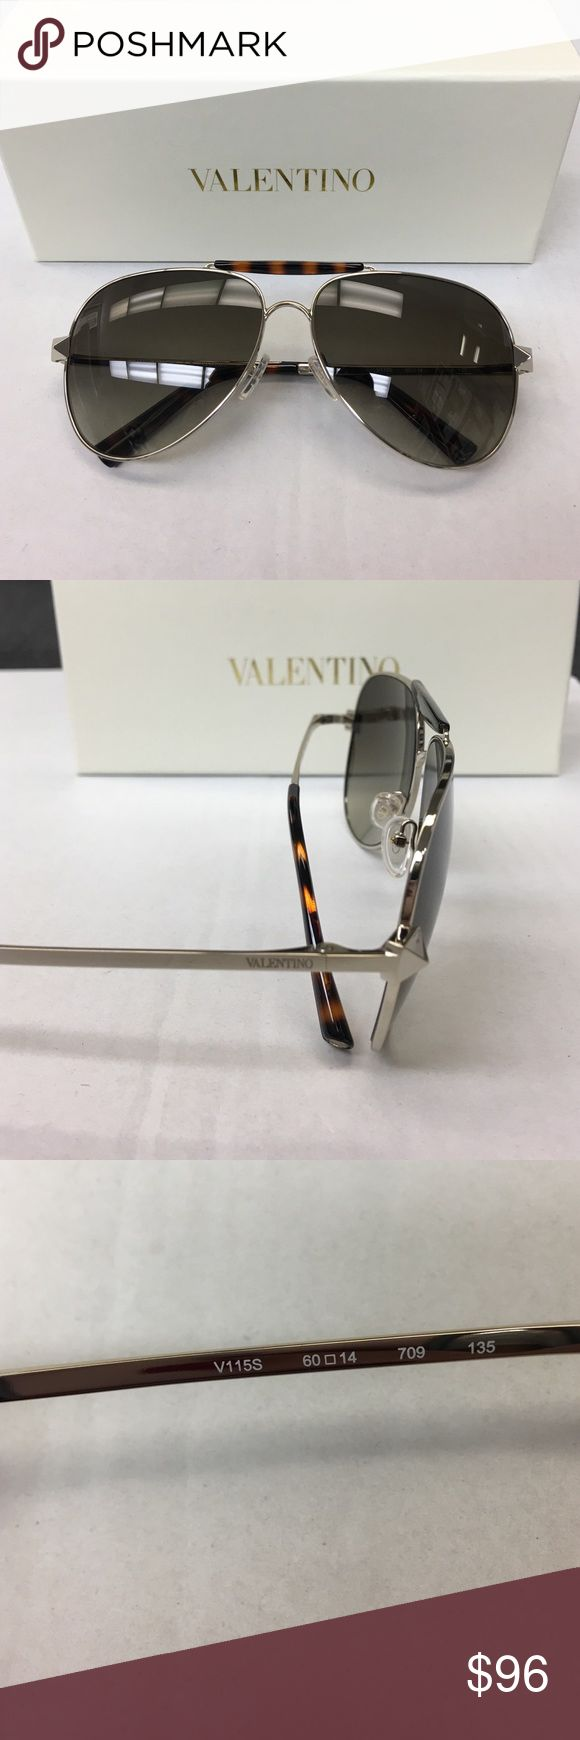 NWT Authentic Valentino Aviator Sunglasses w Case TREAT YO SELF👑  Brand New!! Stunning Authentic Valentino Women's Sunglasses  Model: V115s Color: 709 Light Gold, Dark Havana Style: Aviator  Includes: Valentino Box & Case Microfiber Cleaning Cloth Valentino Certificate of Authenticity   The PERFECT present for anyone!!  Retails for over $360 ~ *Price Firm* Valentino Accessories Sunglasses